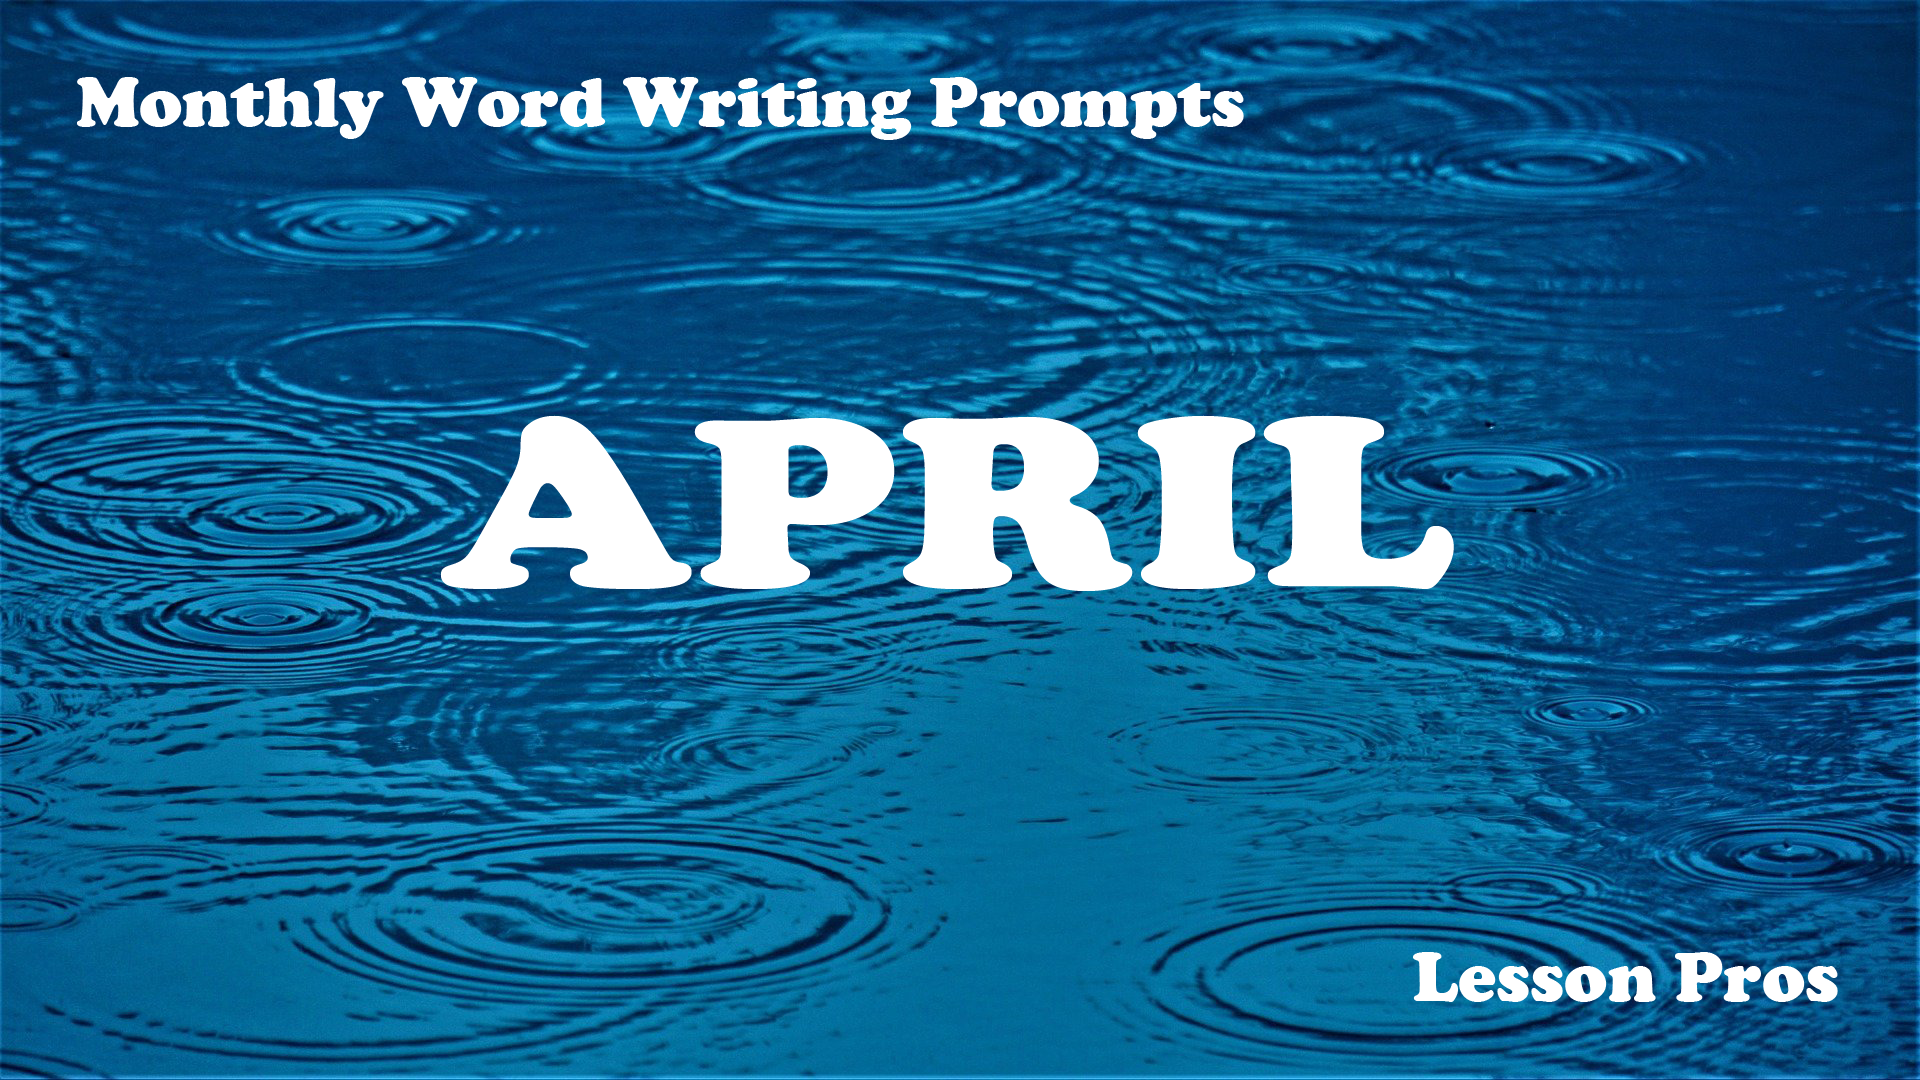 Writing Prompts - April Lesson Pros